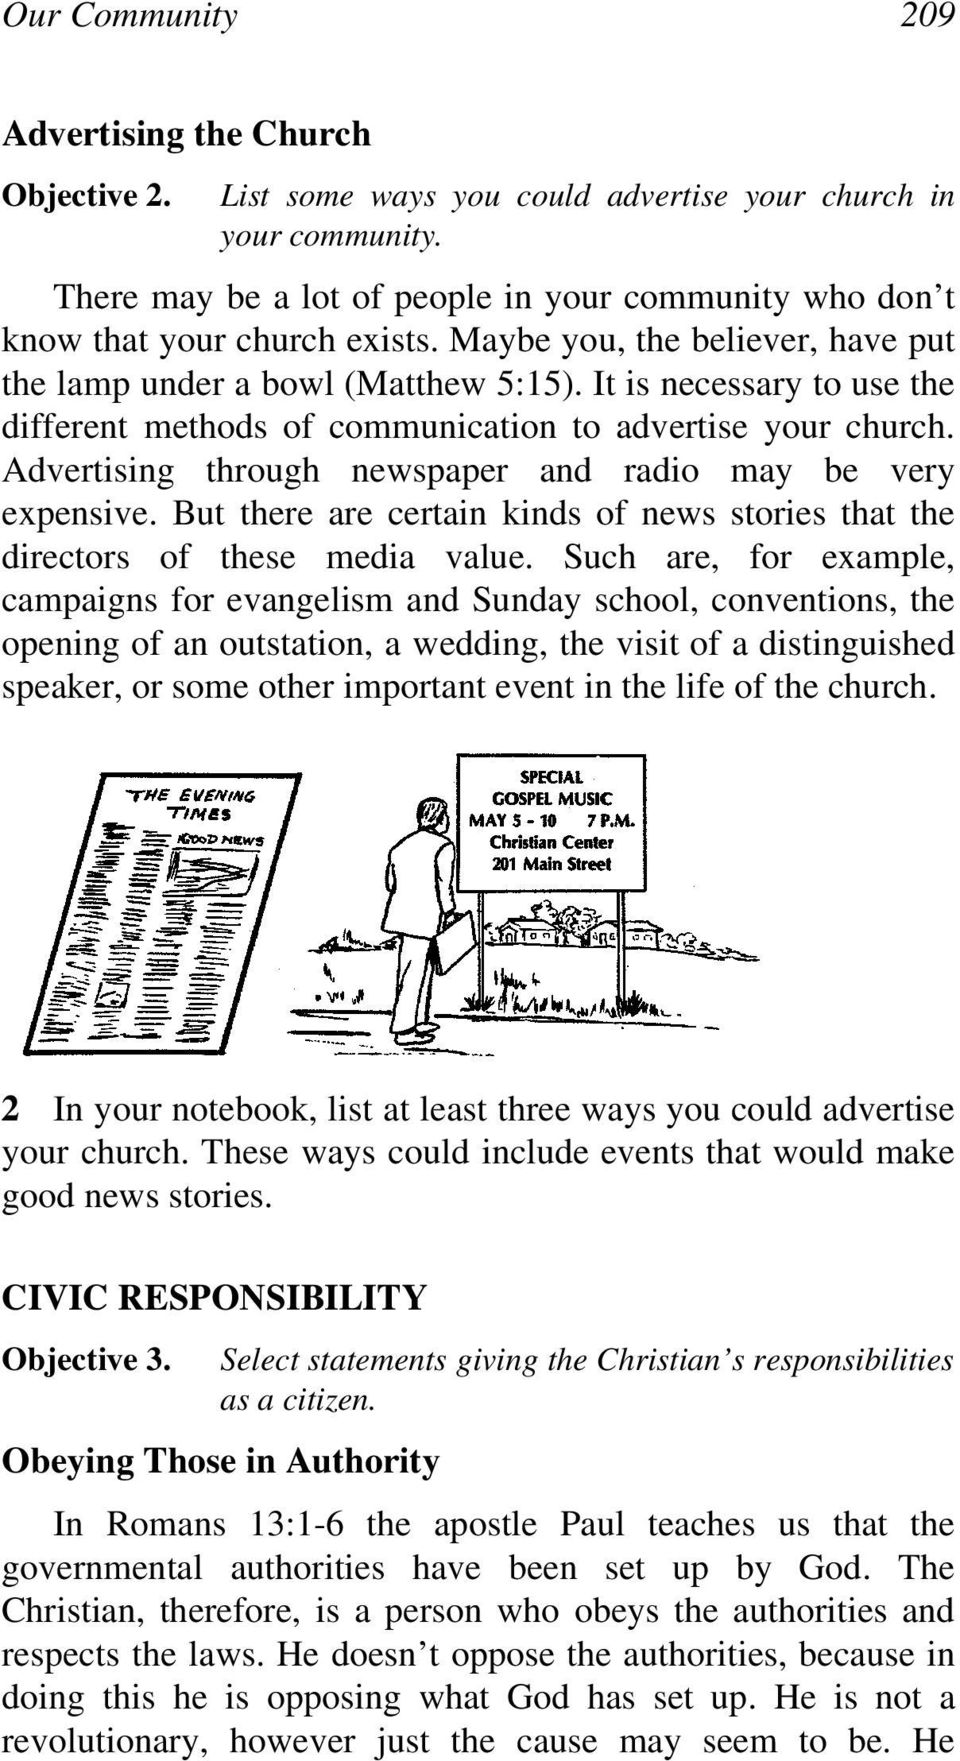 It is necessary to use the different methods of communication to advertise your church. Advertising through newspaper and radio may be very expensive.